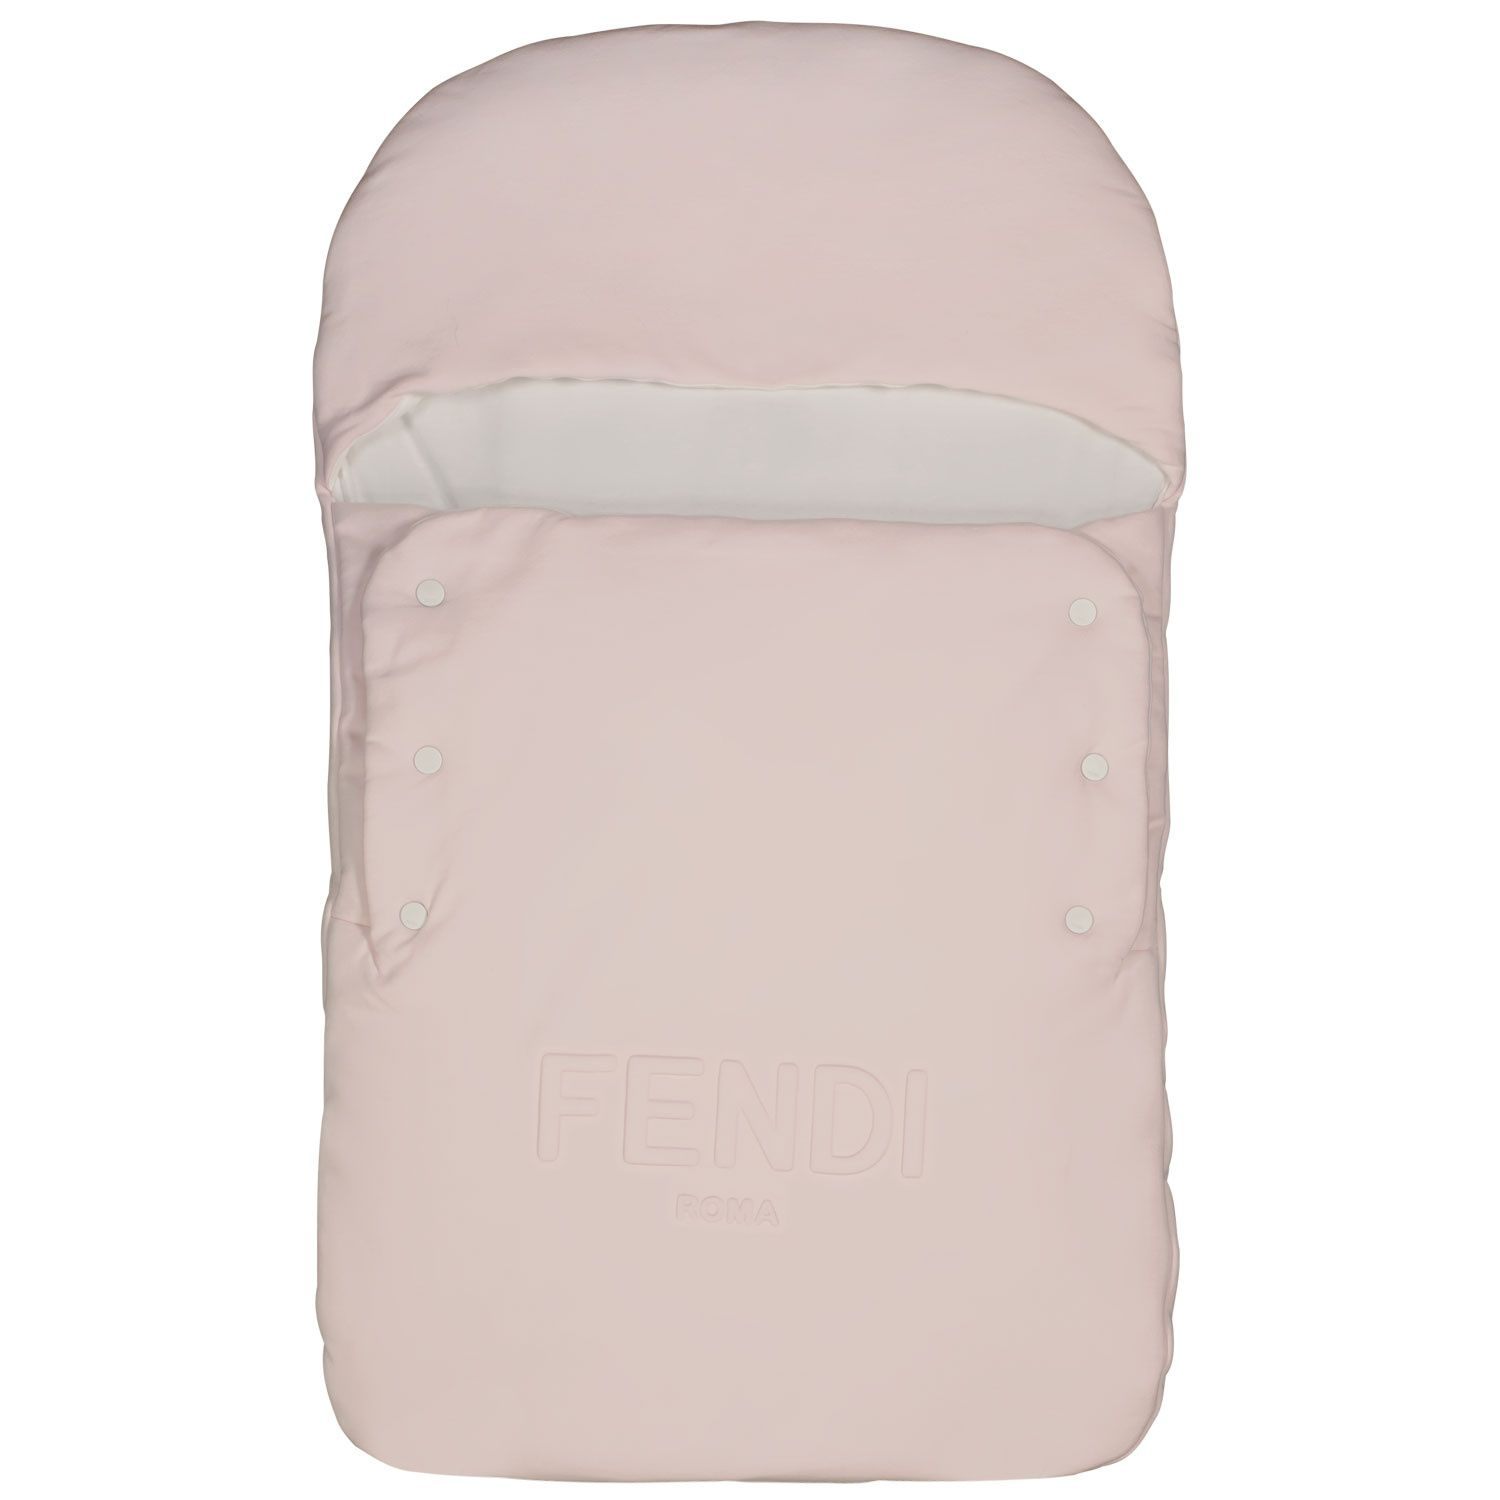 Picture of Fendi BUJ193 baby accessory light pink